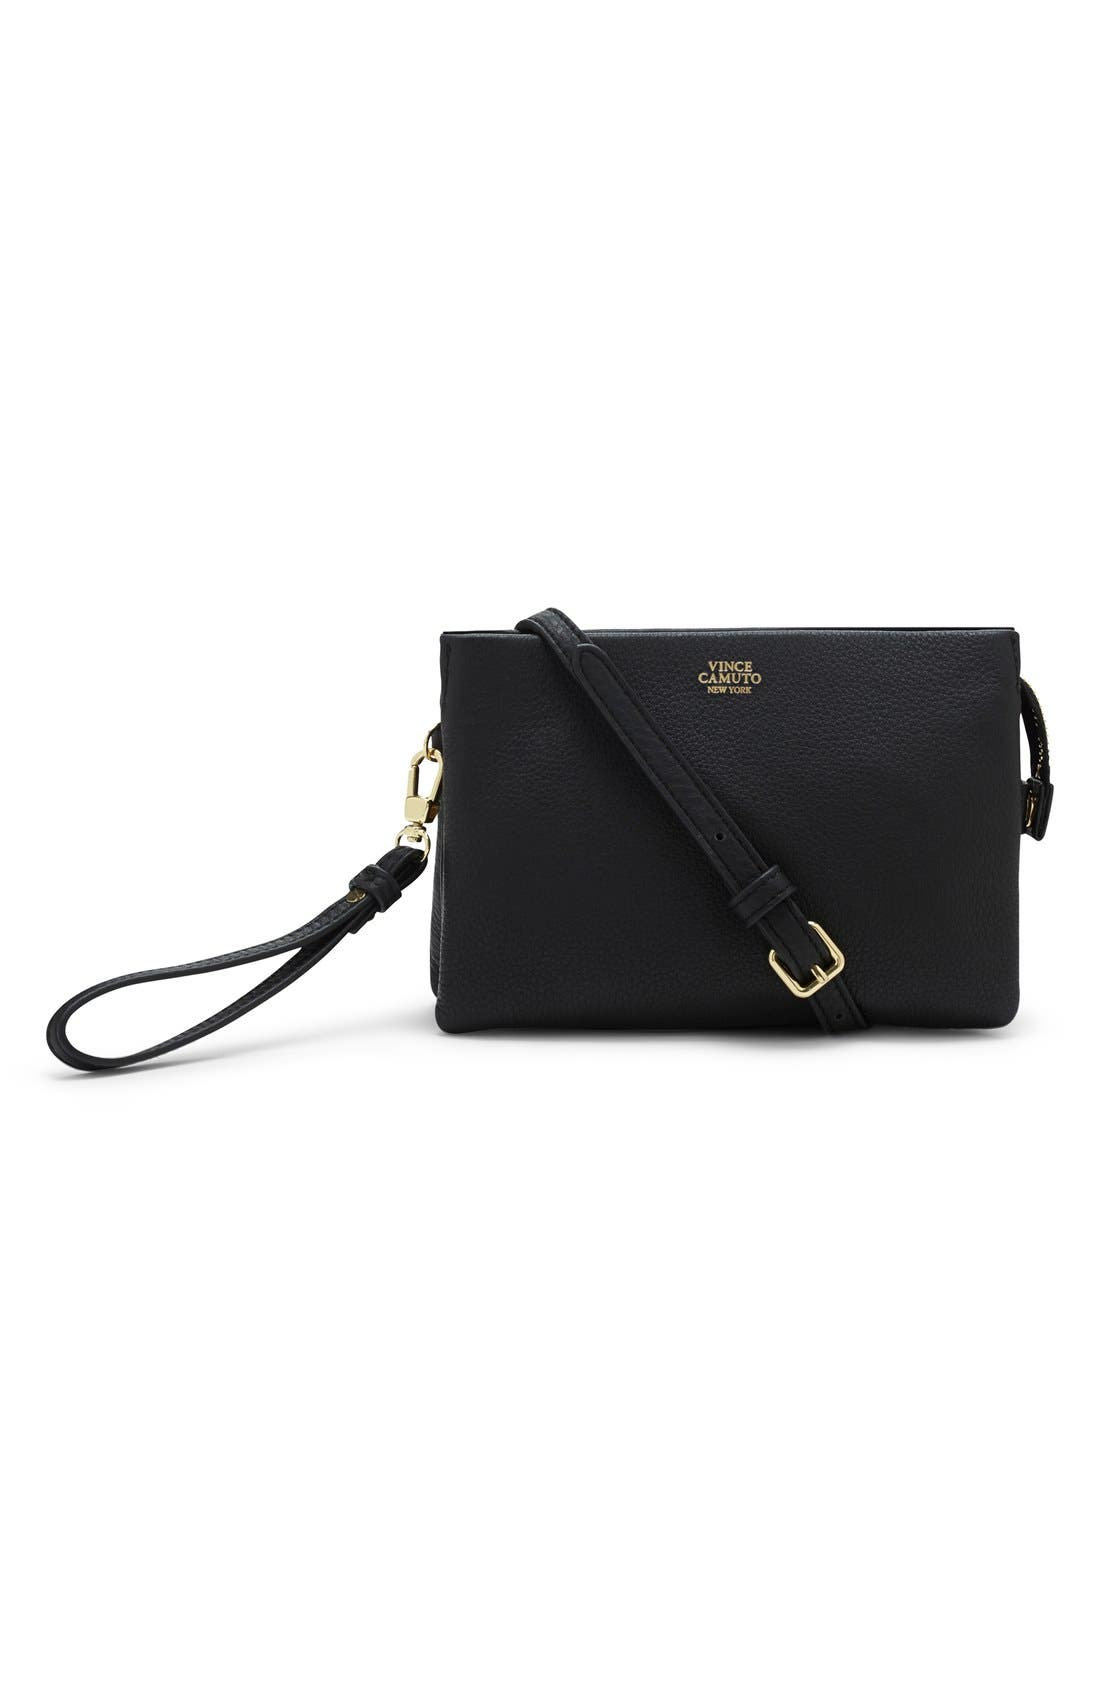 'Cami' Leather Crossbody Bag,                             Main thumbnail 1, color,